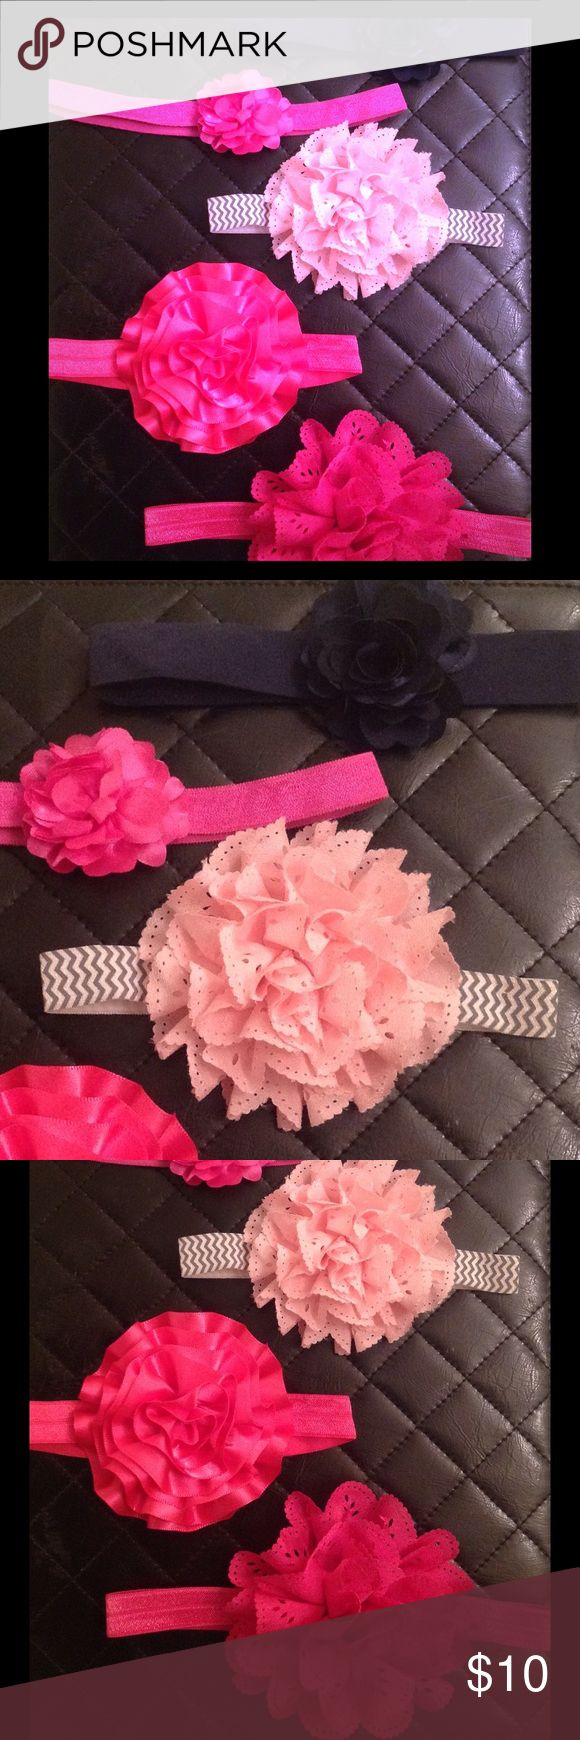 Rosette Baby Girl Headband Bundle Set of 5 rosette headbands. Excellent condition. Worn once. 2 small rosette headbands (navy and fuchsia) and 3 large rosette headbands (baby pink with grey and white chevron print band and 2 fuchsias) Accessories Hair Accessories